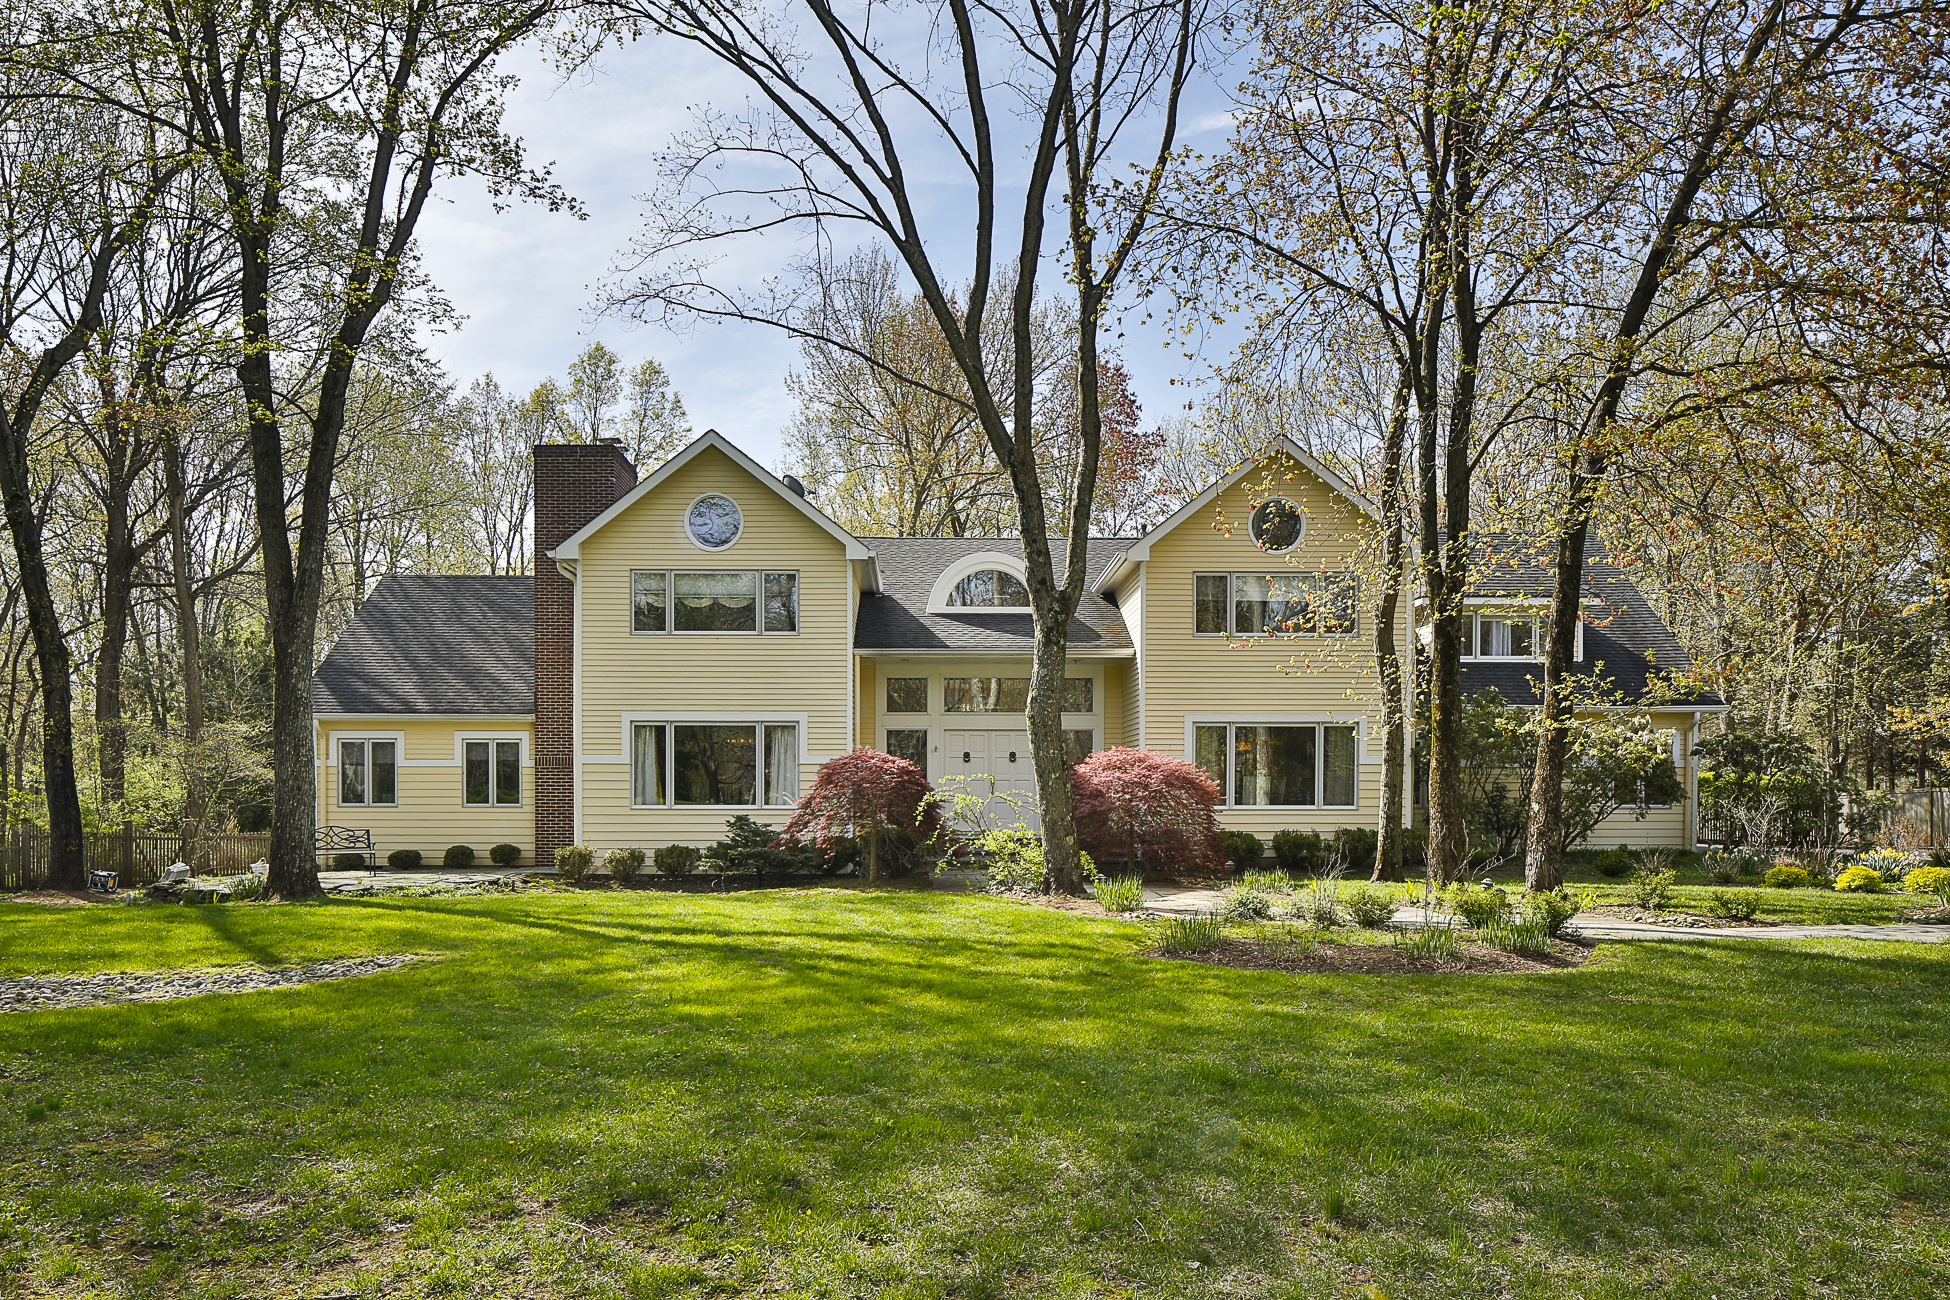 一戸建て のために 売買 アット A Grandly Scaled Home That's Very Livable - Lawrence Township 7 Benedek Road Princeton, ニュージャージー 08540 アメリカ合衆国